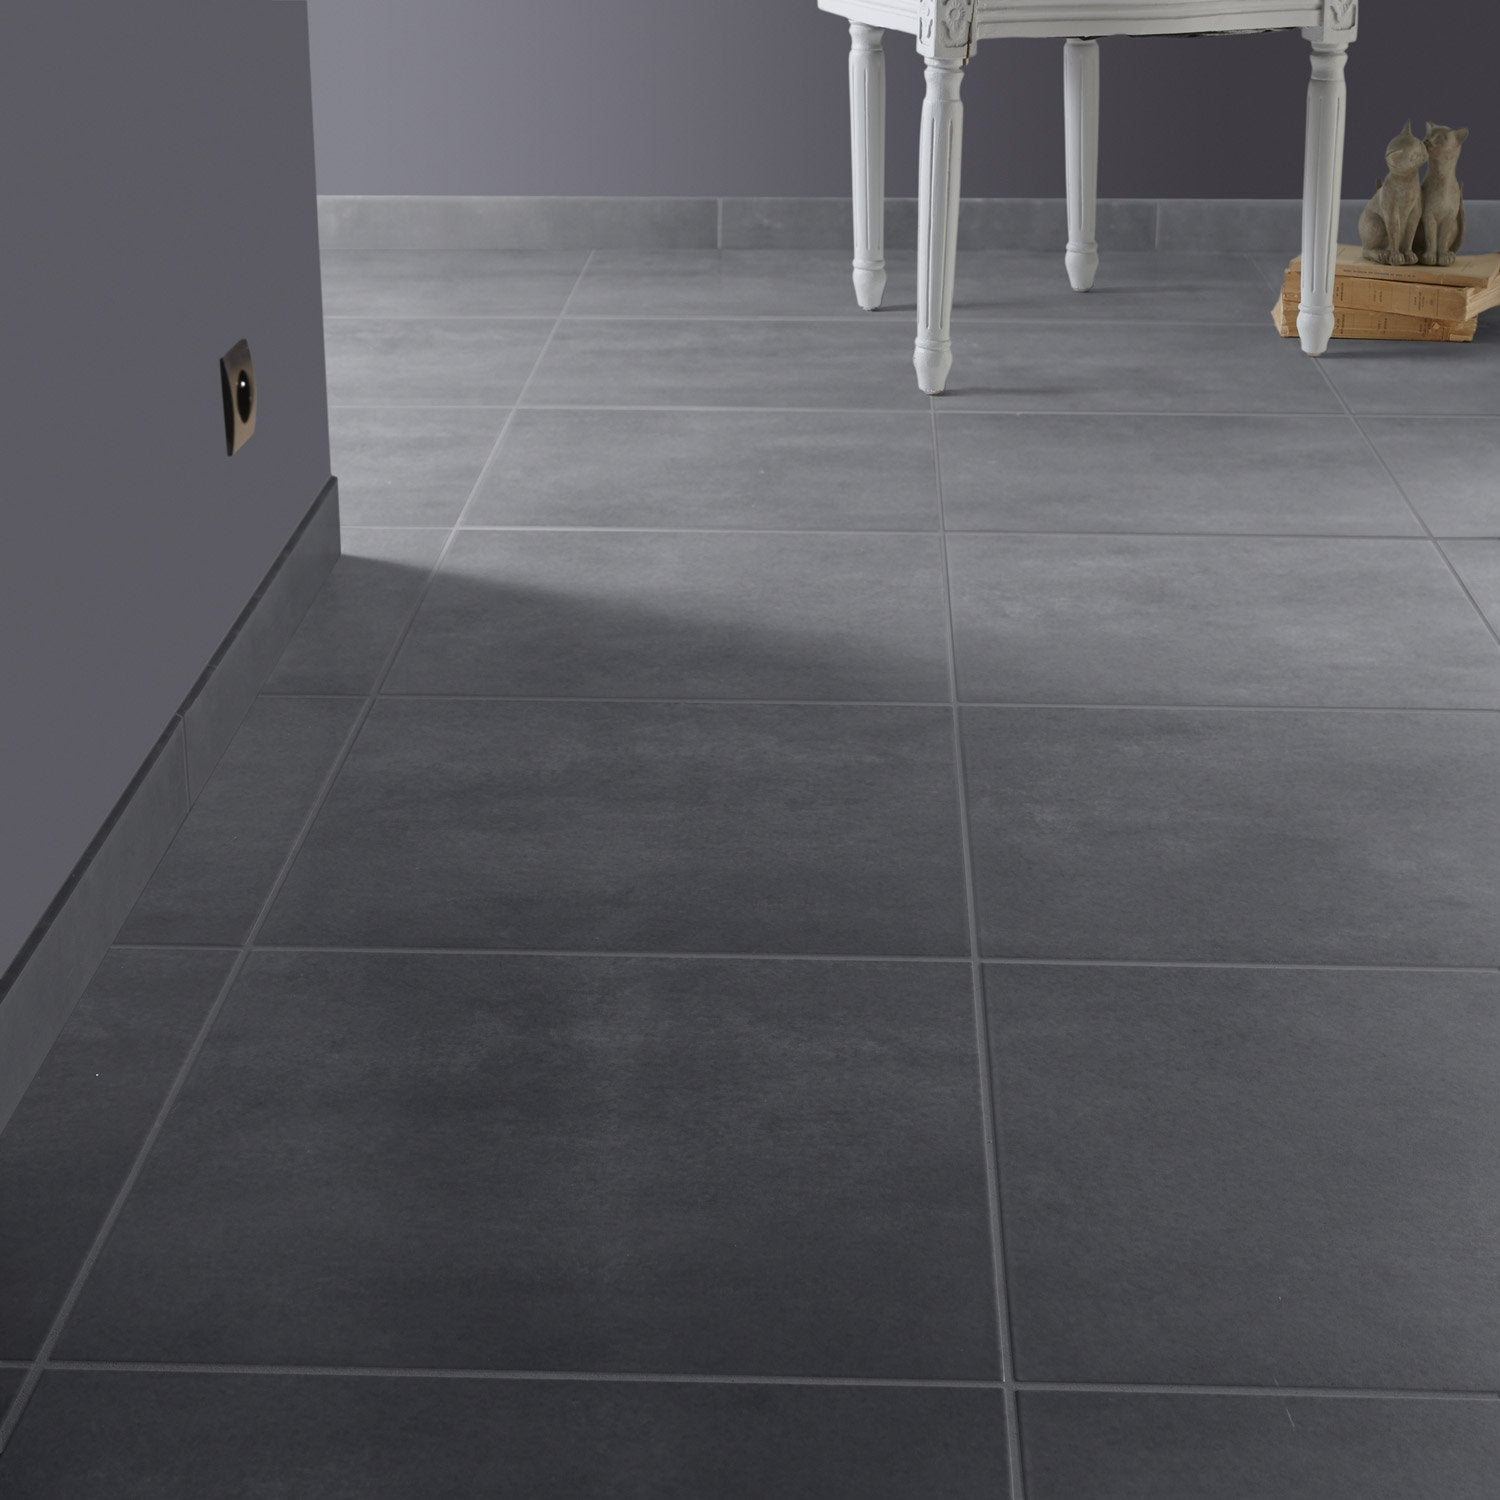 Carrelage gris leroy merlin id e inspirante for Carrelage 45x45